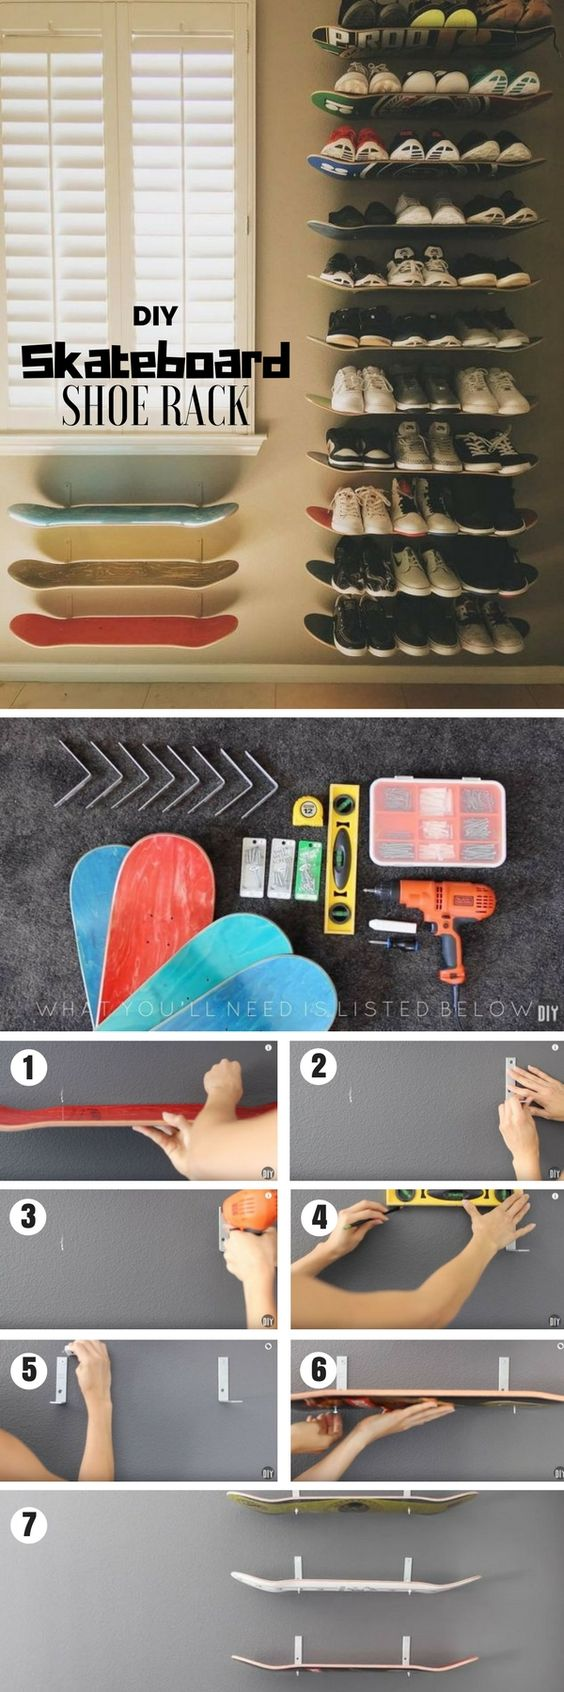 Check out how to build a DIY shoe rack from old skateboards @istandarddesign